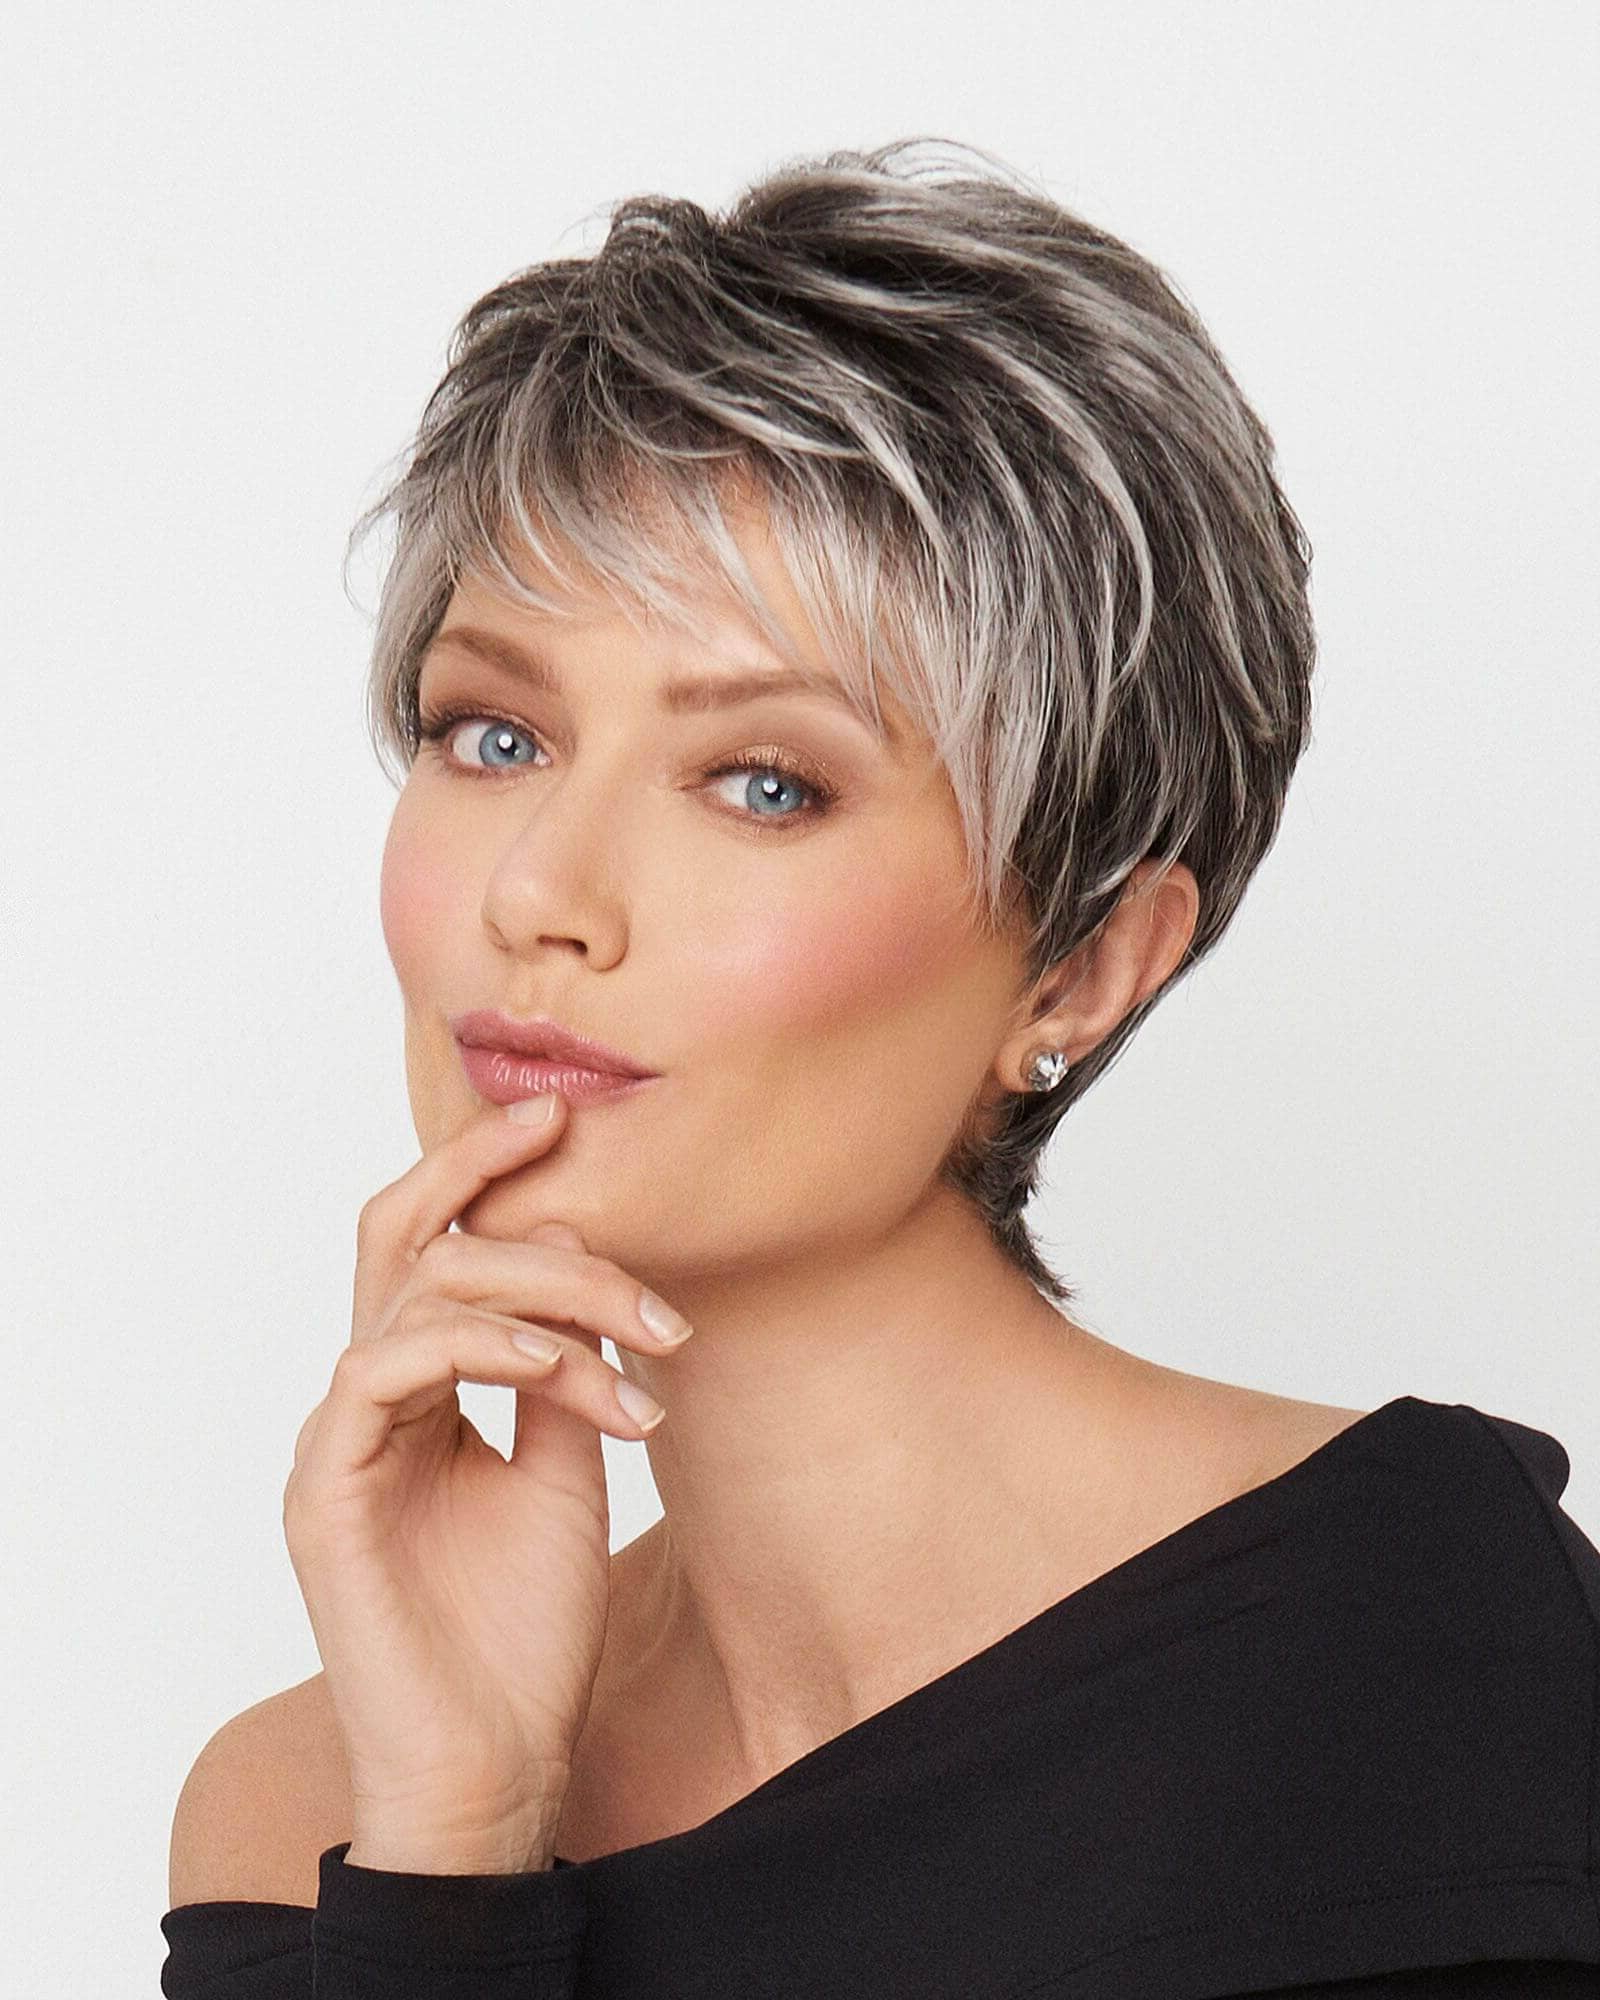 50 Pixie Haircuts You'll See Trending In 2018 Intended For Ash Blonde Undercut Pixie Haircuts (View 10 of 20)